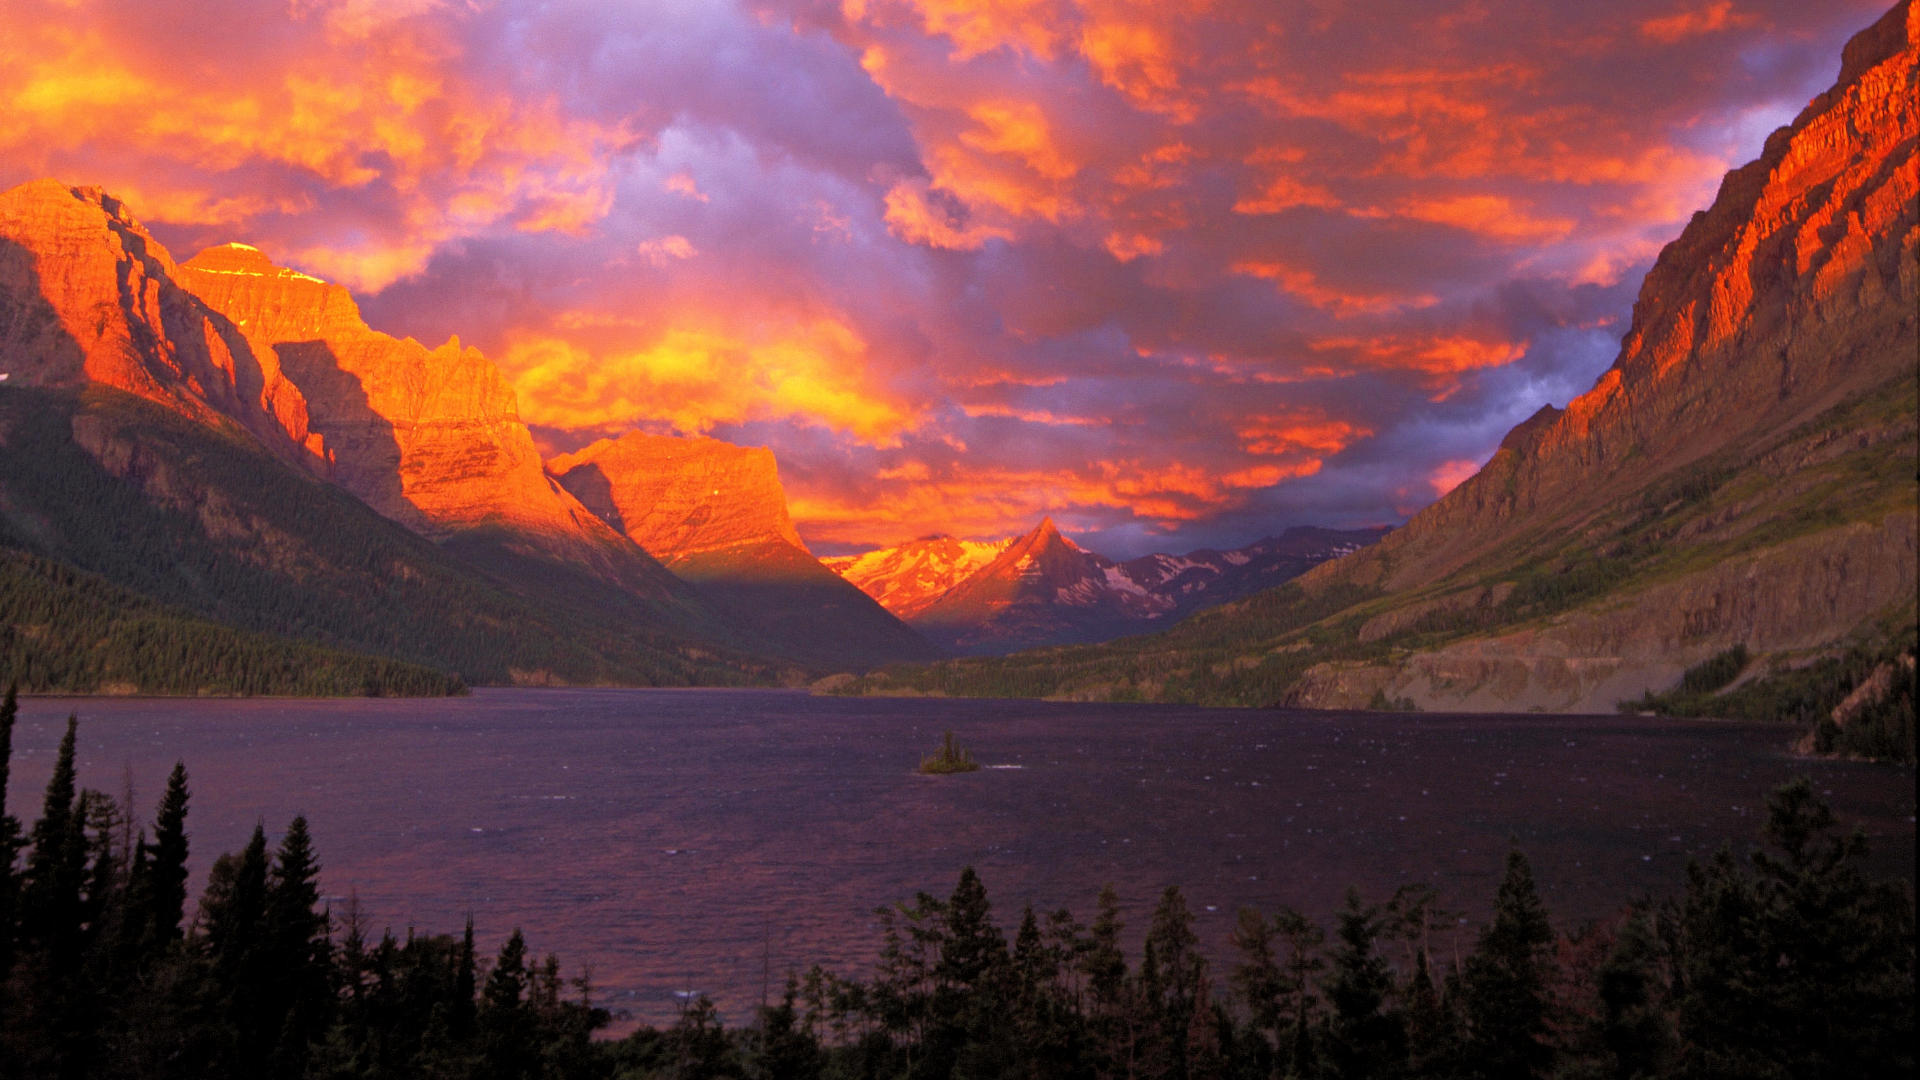 Snow Mountain Sunrise Wallpapers Download at